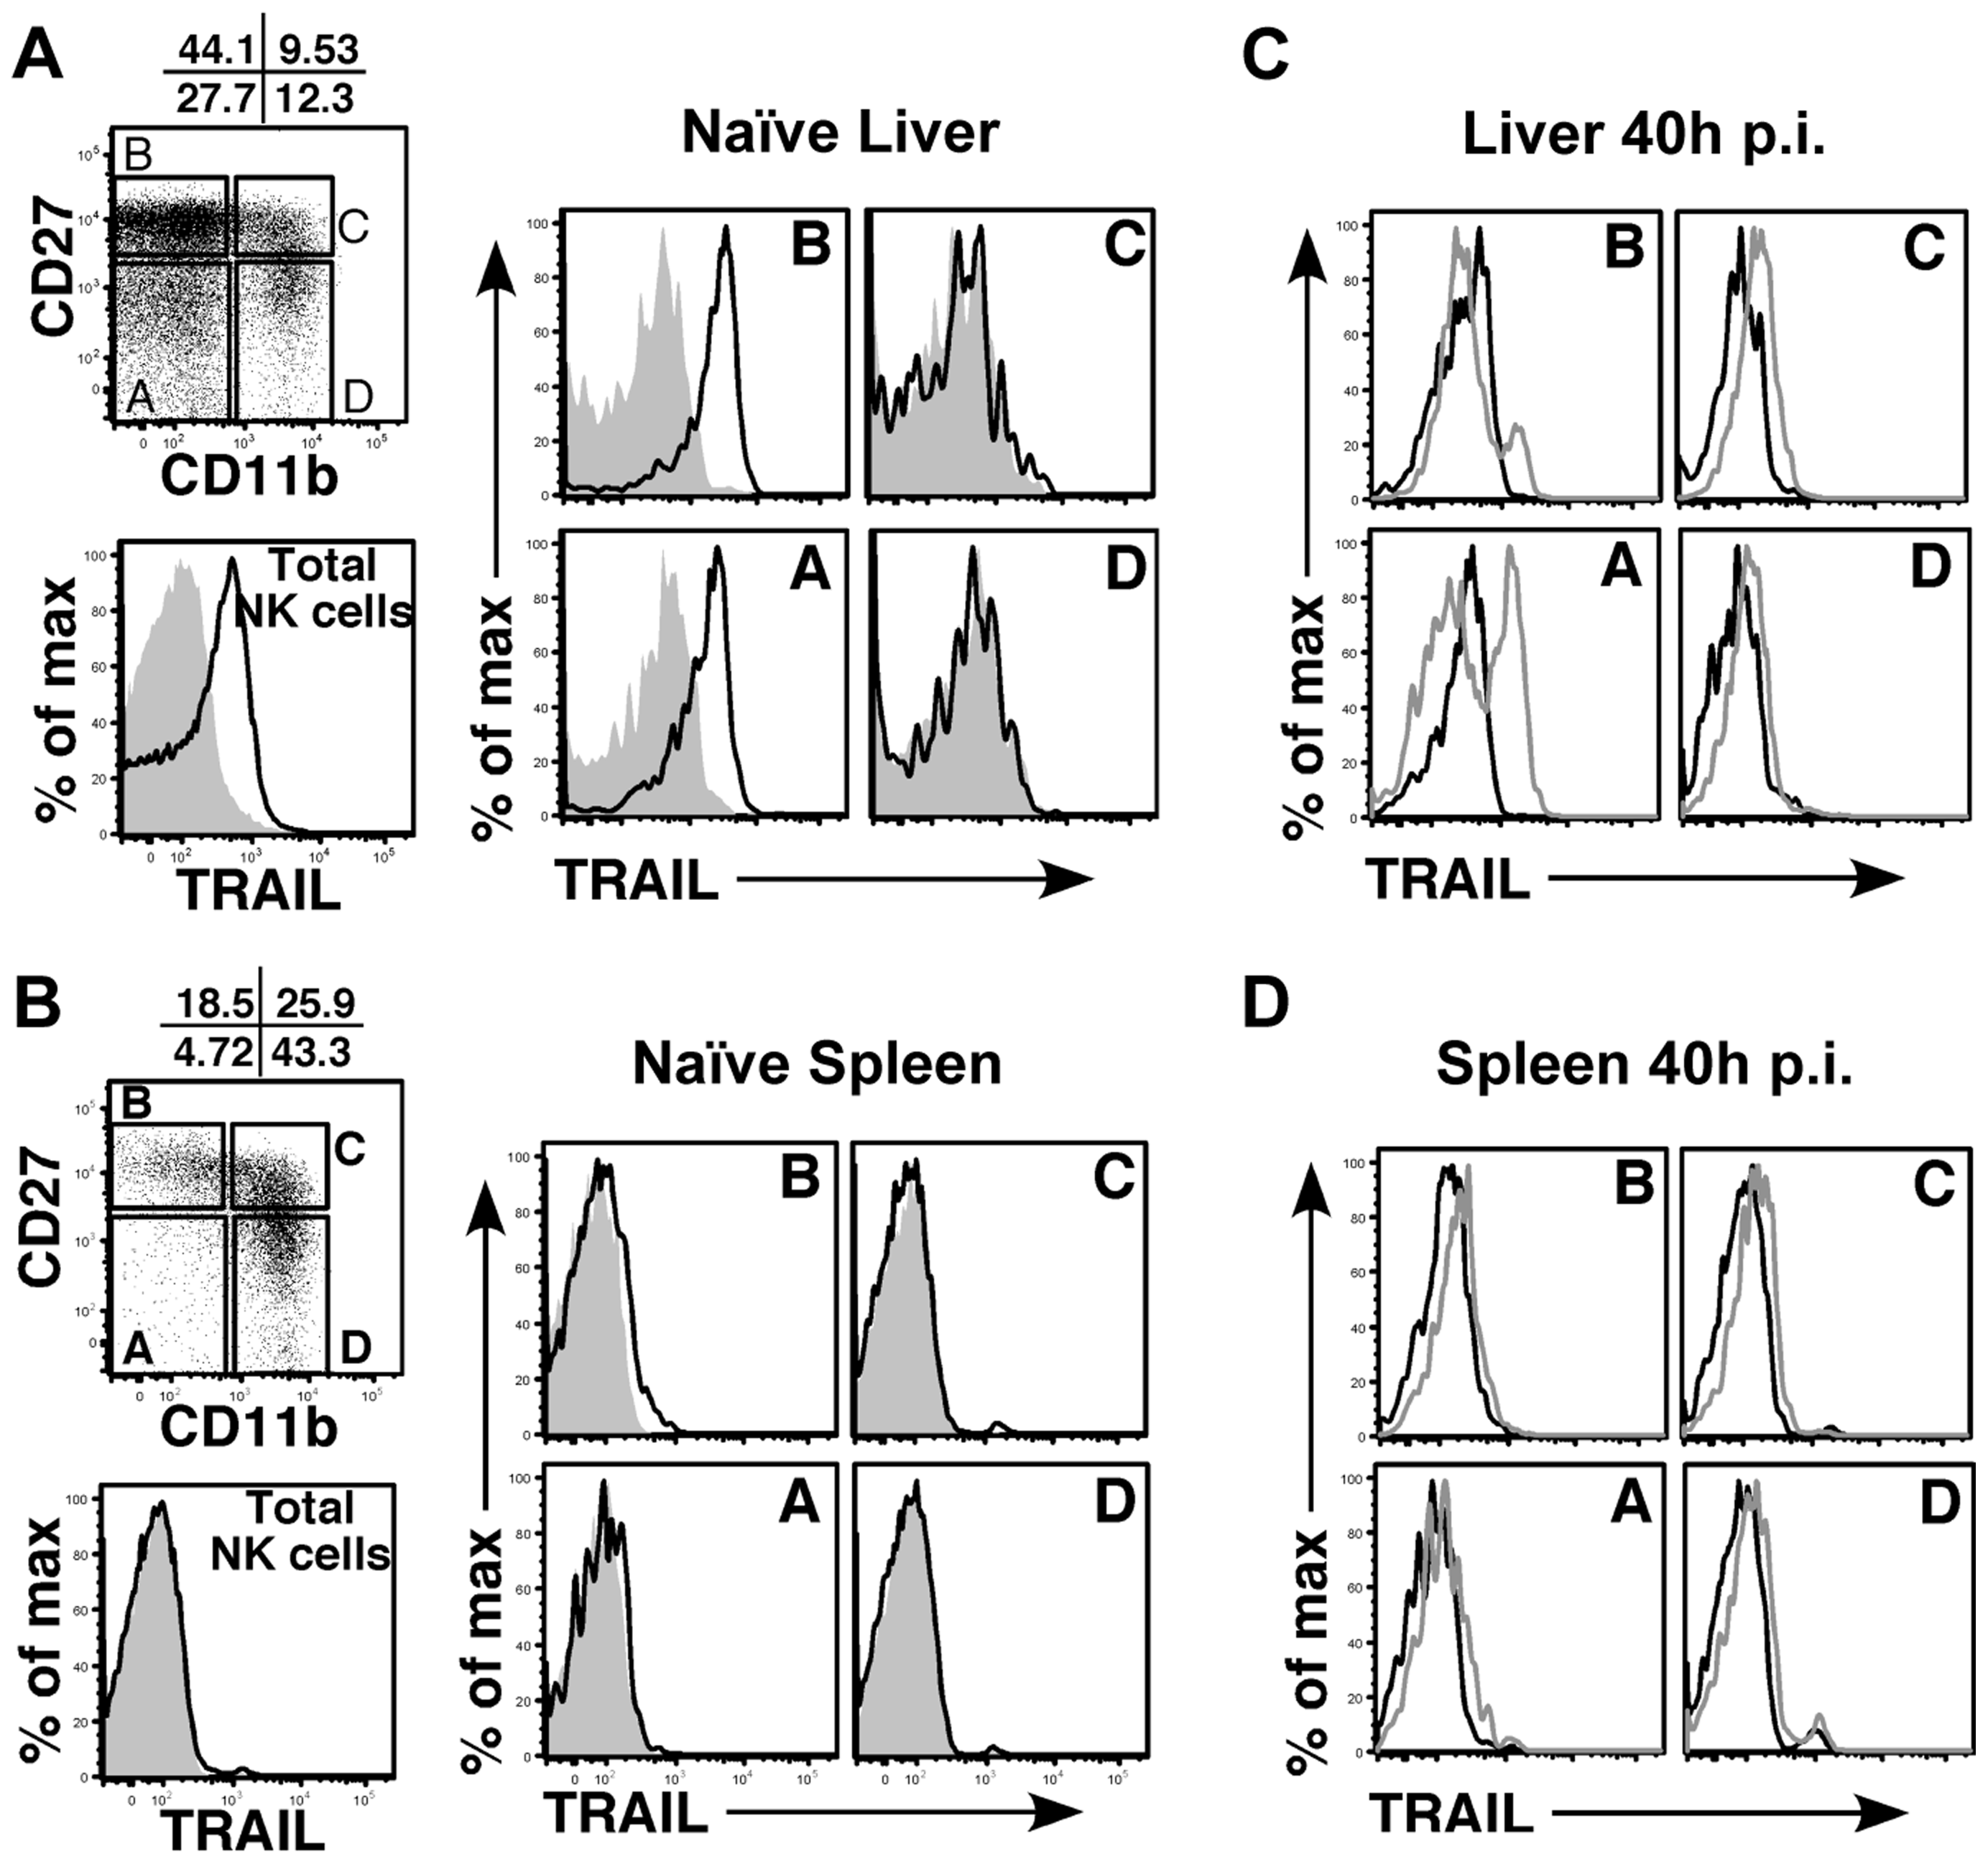 Immature liver NK cells express high TRAIL levels.